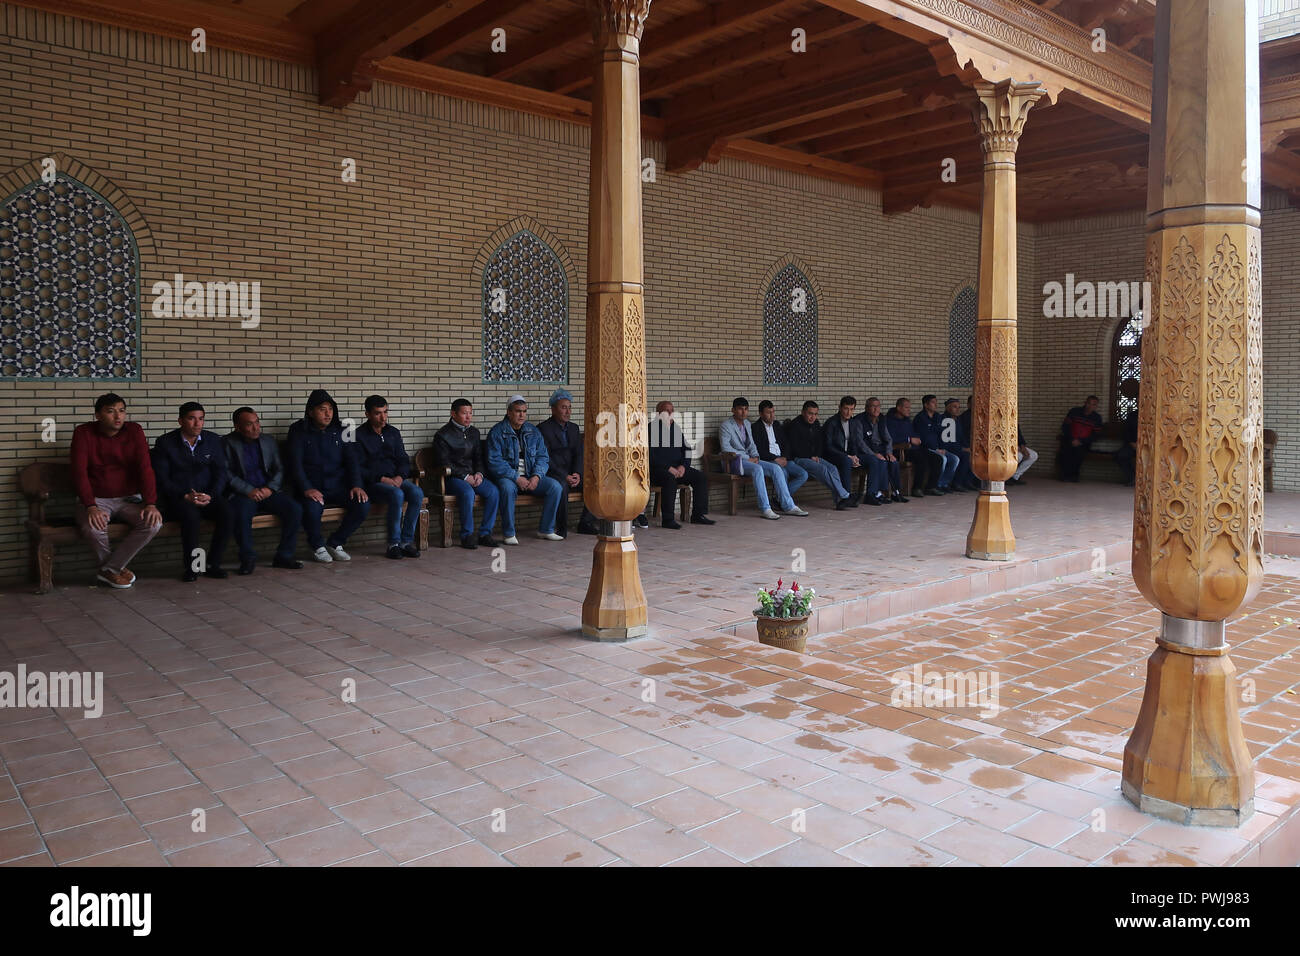 Muslim worshipers sitting at the courtyard of the structure reputedly holding the remains of the Old Testament prophet Daniel, revered by Muslims, Jews and Christians alike in the city of Samarkand alternatively Samarqand of the Timurid dynasty in Uzbekistan - Stock Image